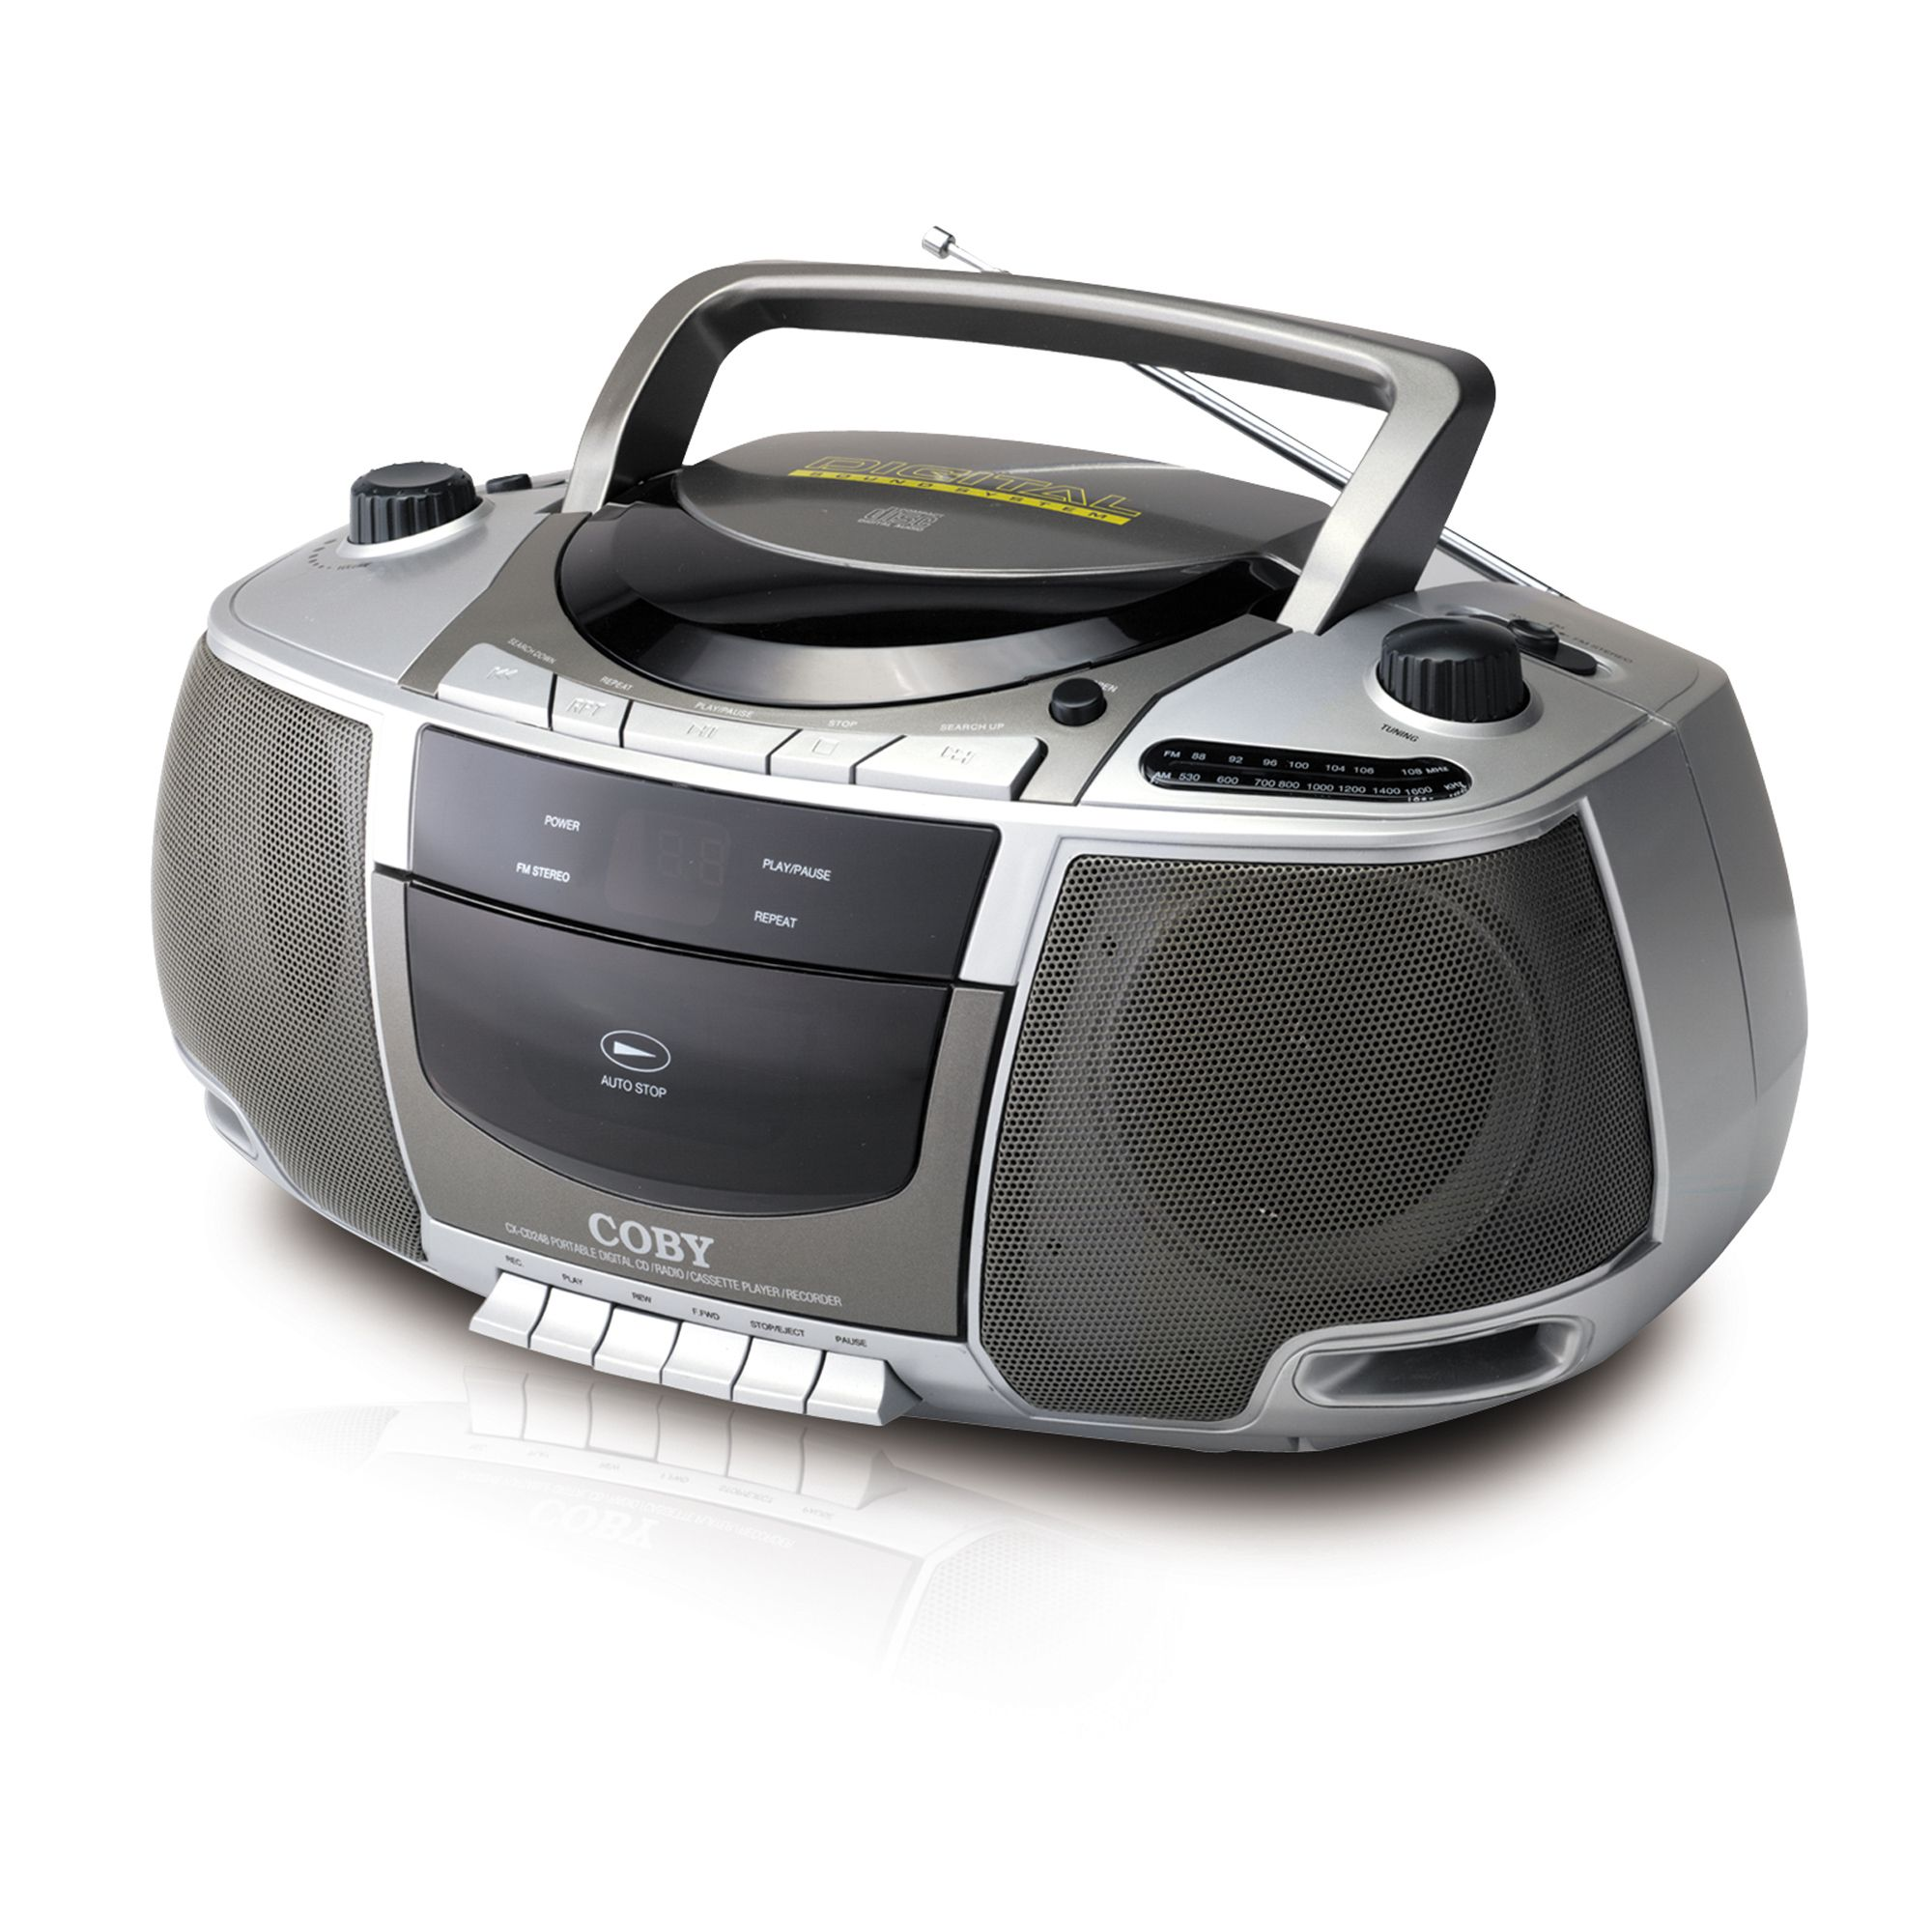 Portable AM FM Radio Mp3 CD Player 181882 likewise Best Options Clock Radio With Headphone Jack additionally Radio Tape Player moreover Coby KTFDVD1093 102 In Under Cabi  LCD TV DVD CD Radio Player Kit additionally Boomboxes. on coby cd player and radio